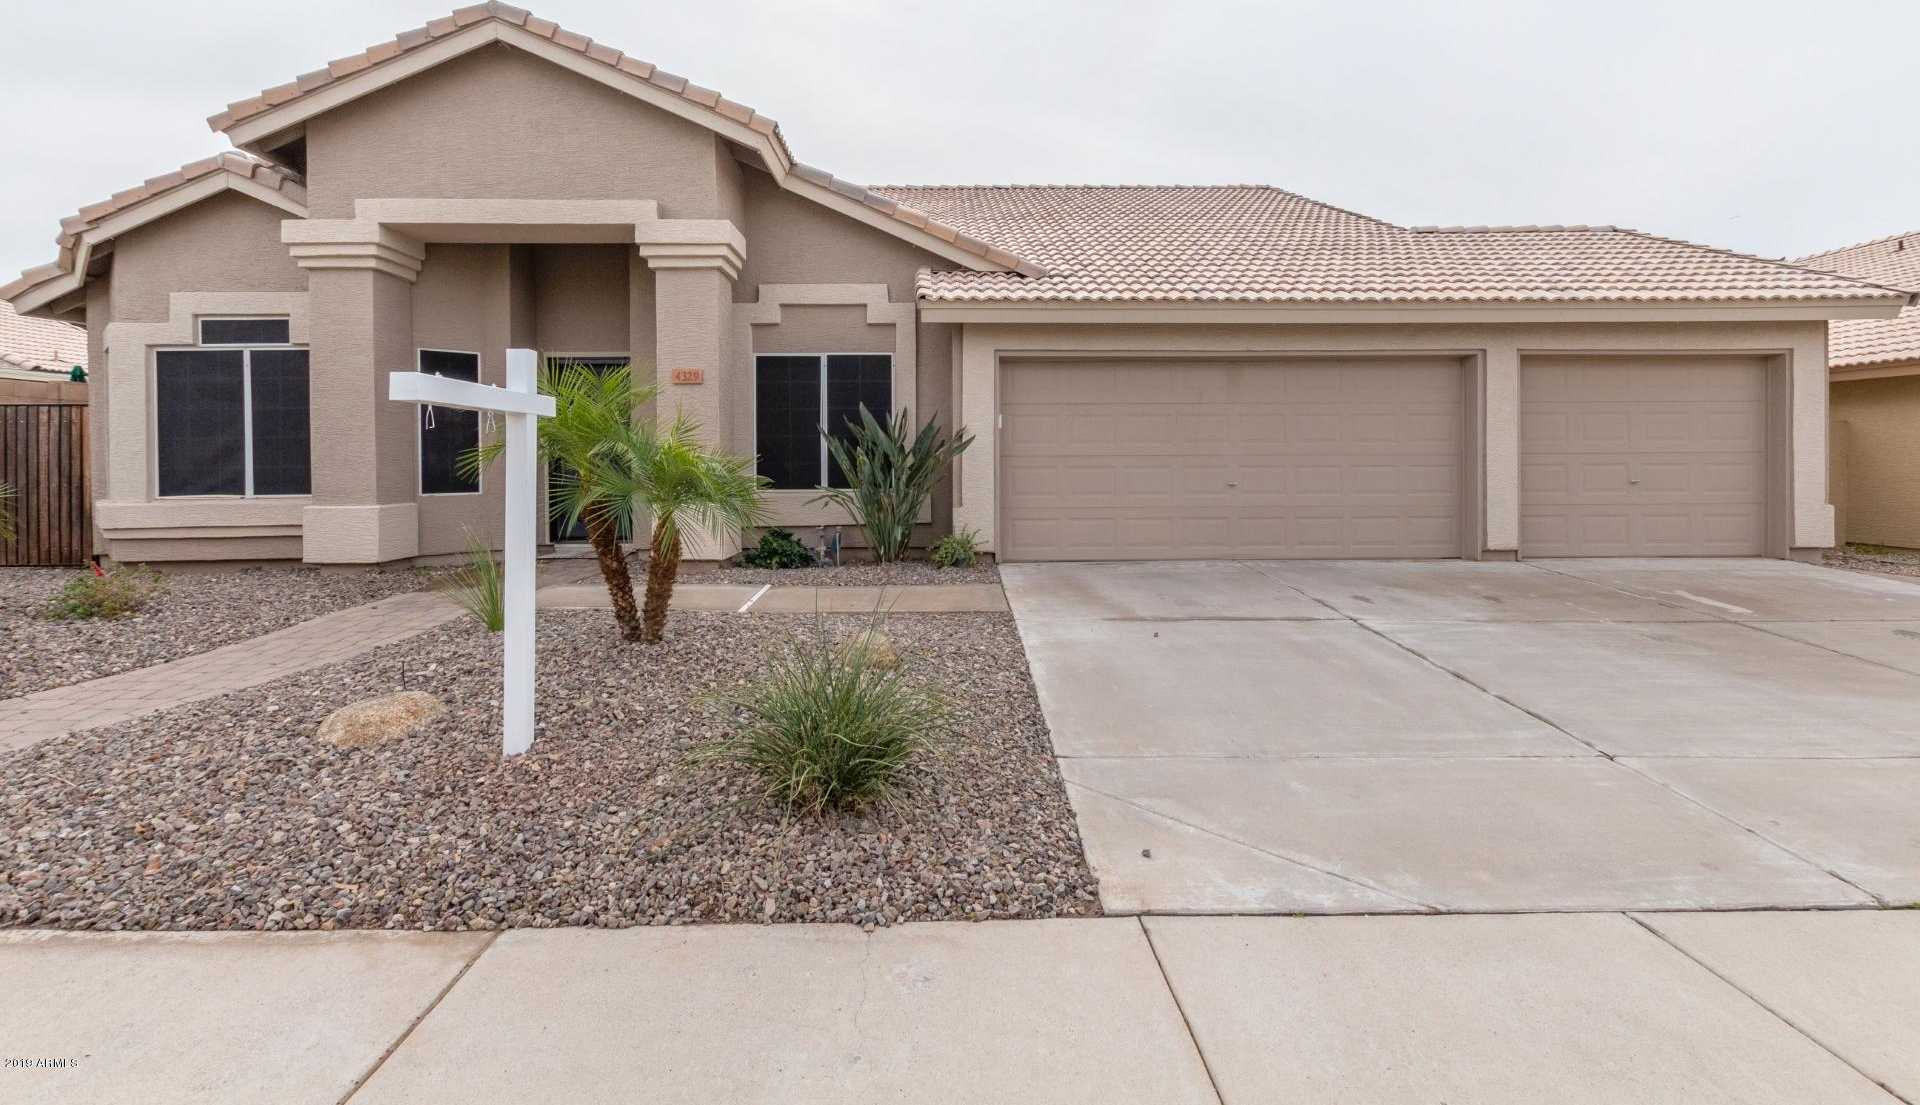 $379,000 - 4Br/2Ba - Home for Sale in Pinnacle Peak Crossing Lot 1-225 Tr A-i, Glendale